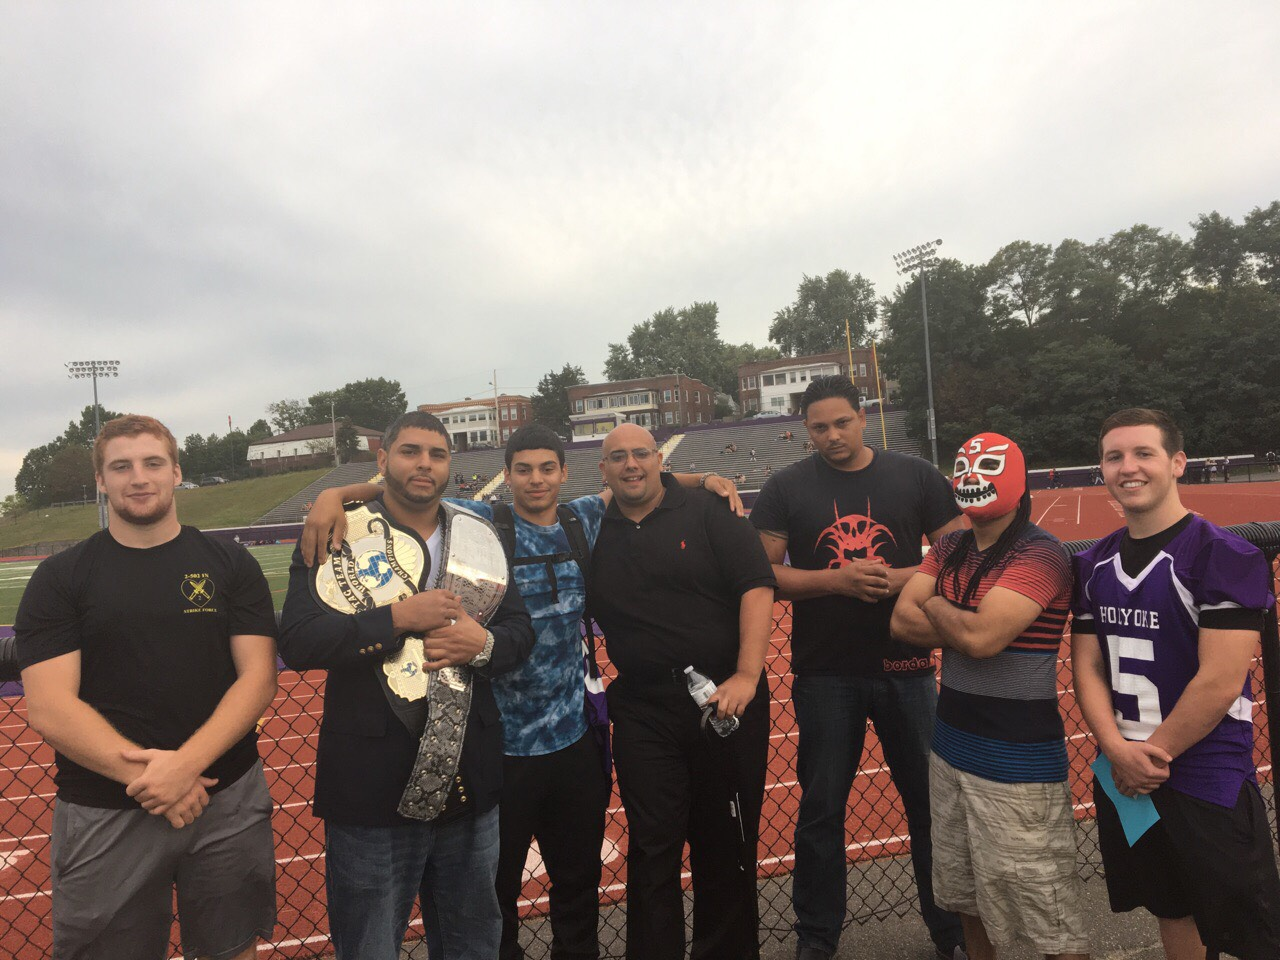 The wrestlers of New Age Old Tyme Wrestling are coming to Dean to lay the smackdown.